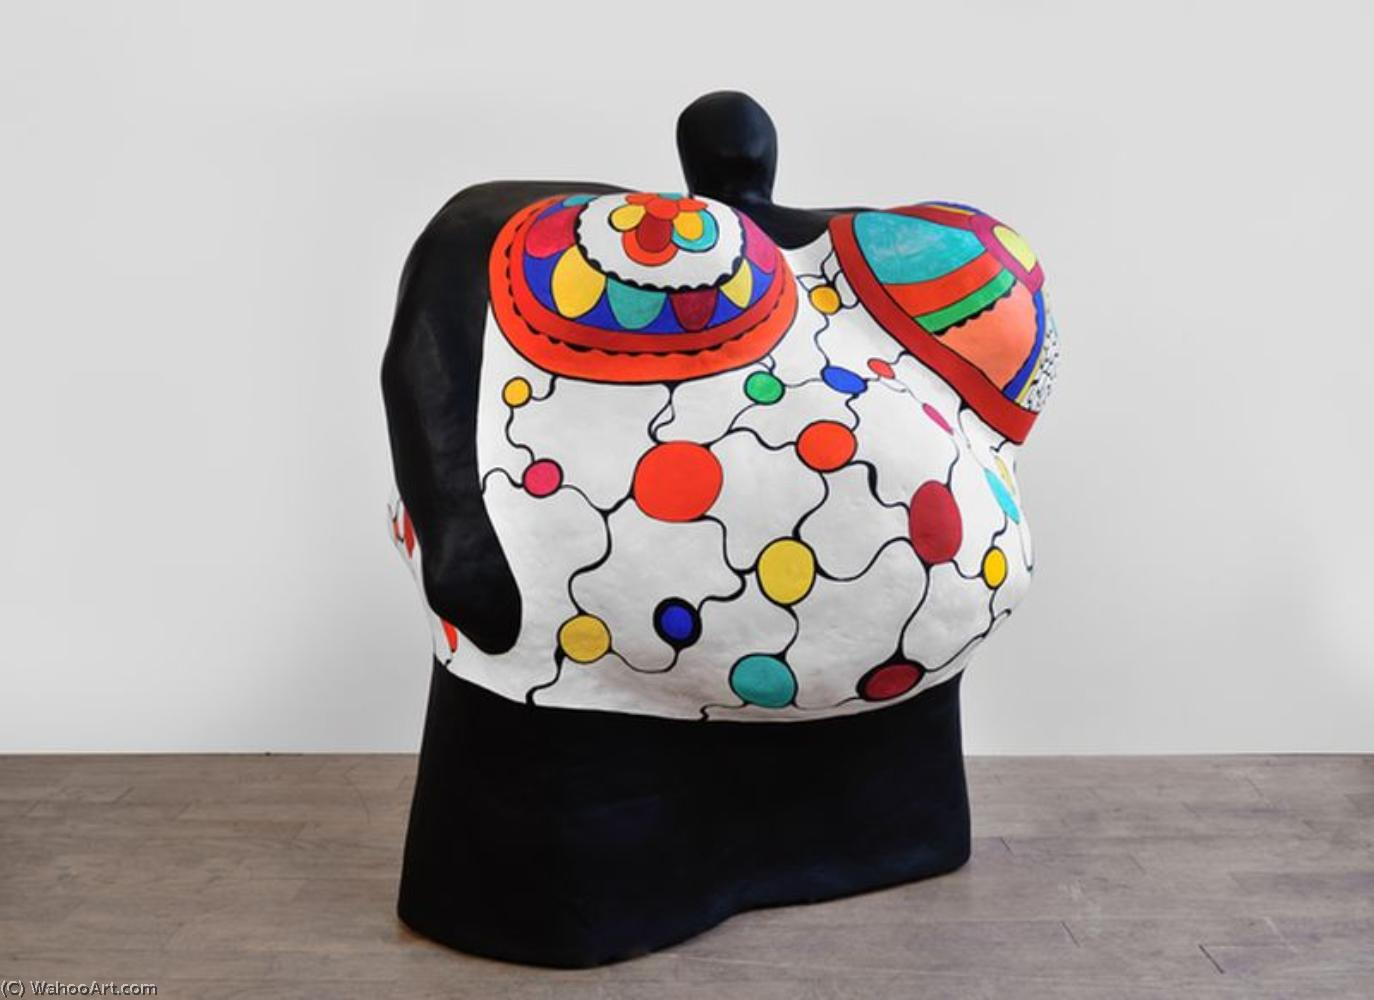 雕塑 通过 Niki De Saint Phalle (1930-2002, France)